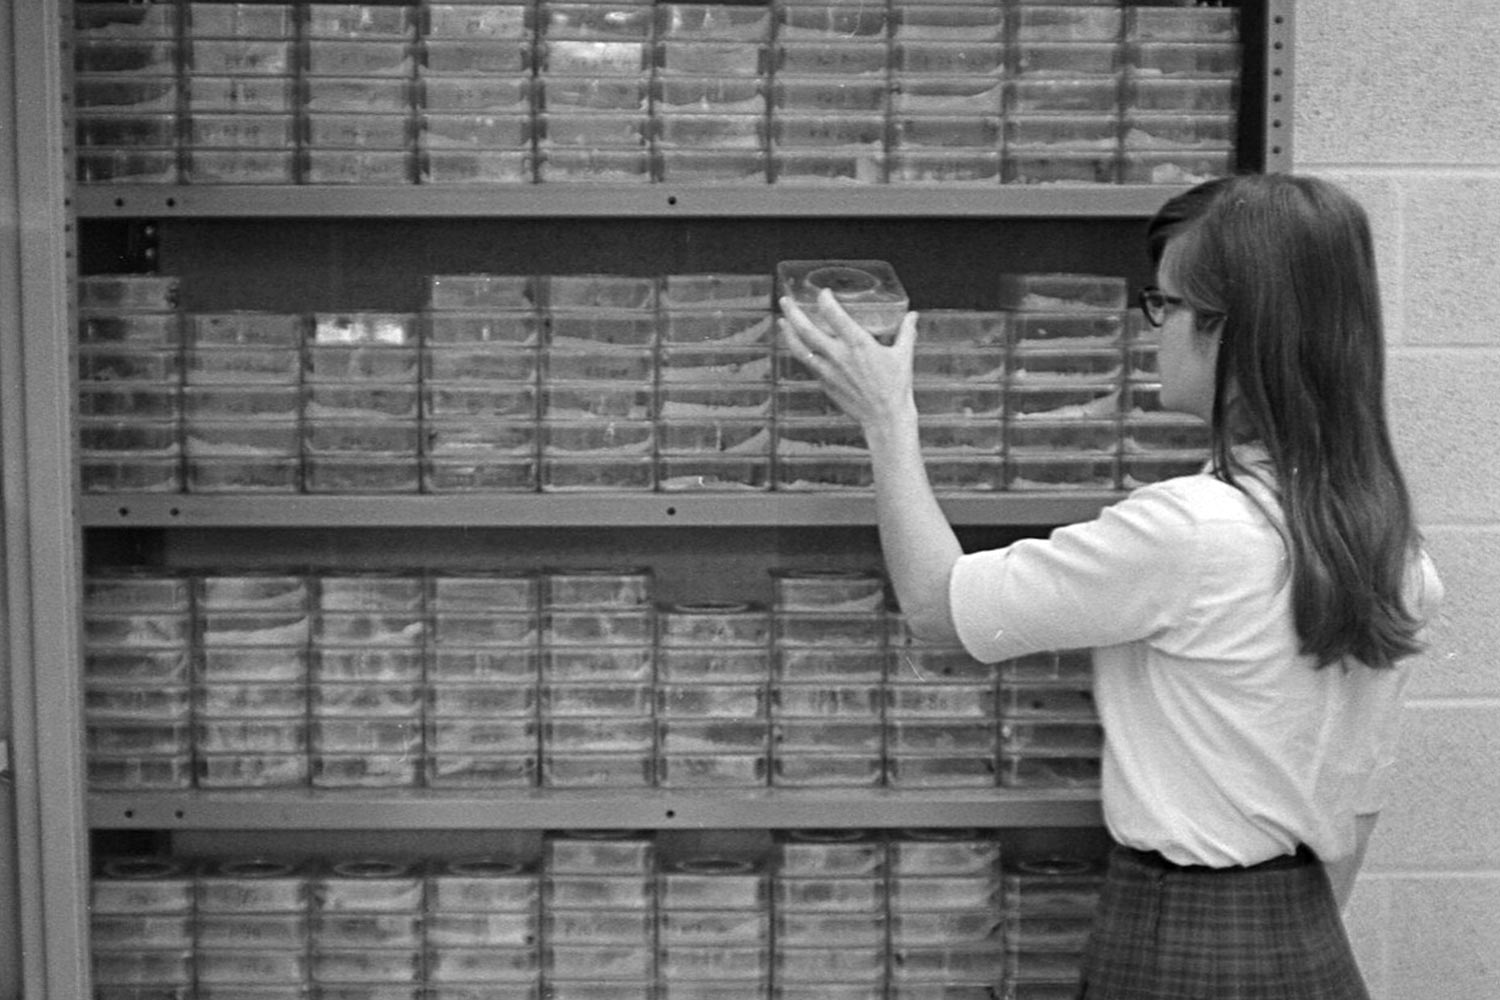 A graduate student peruses books in a biology lab in 1967.